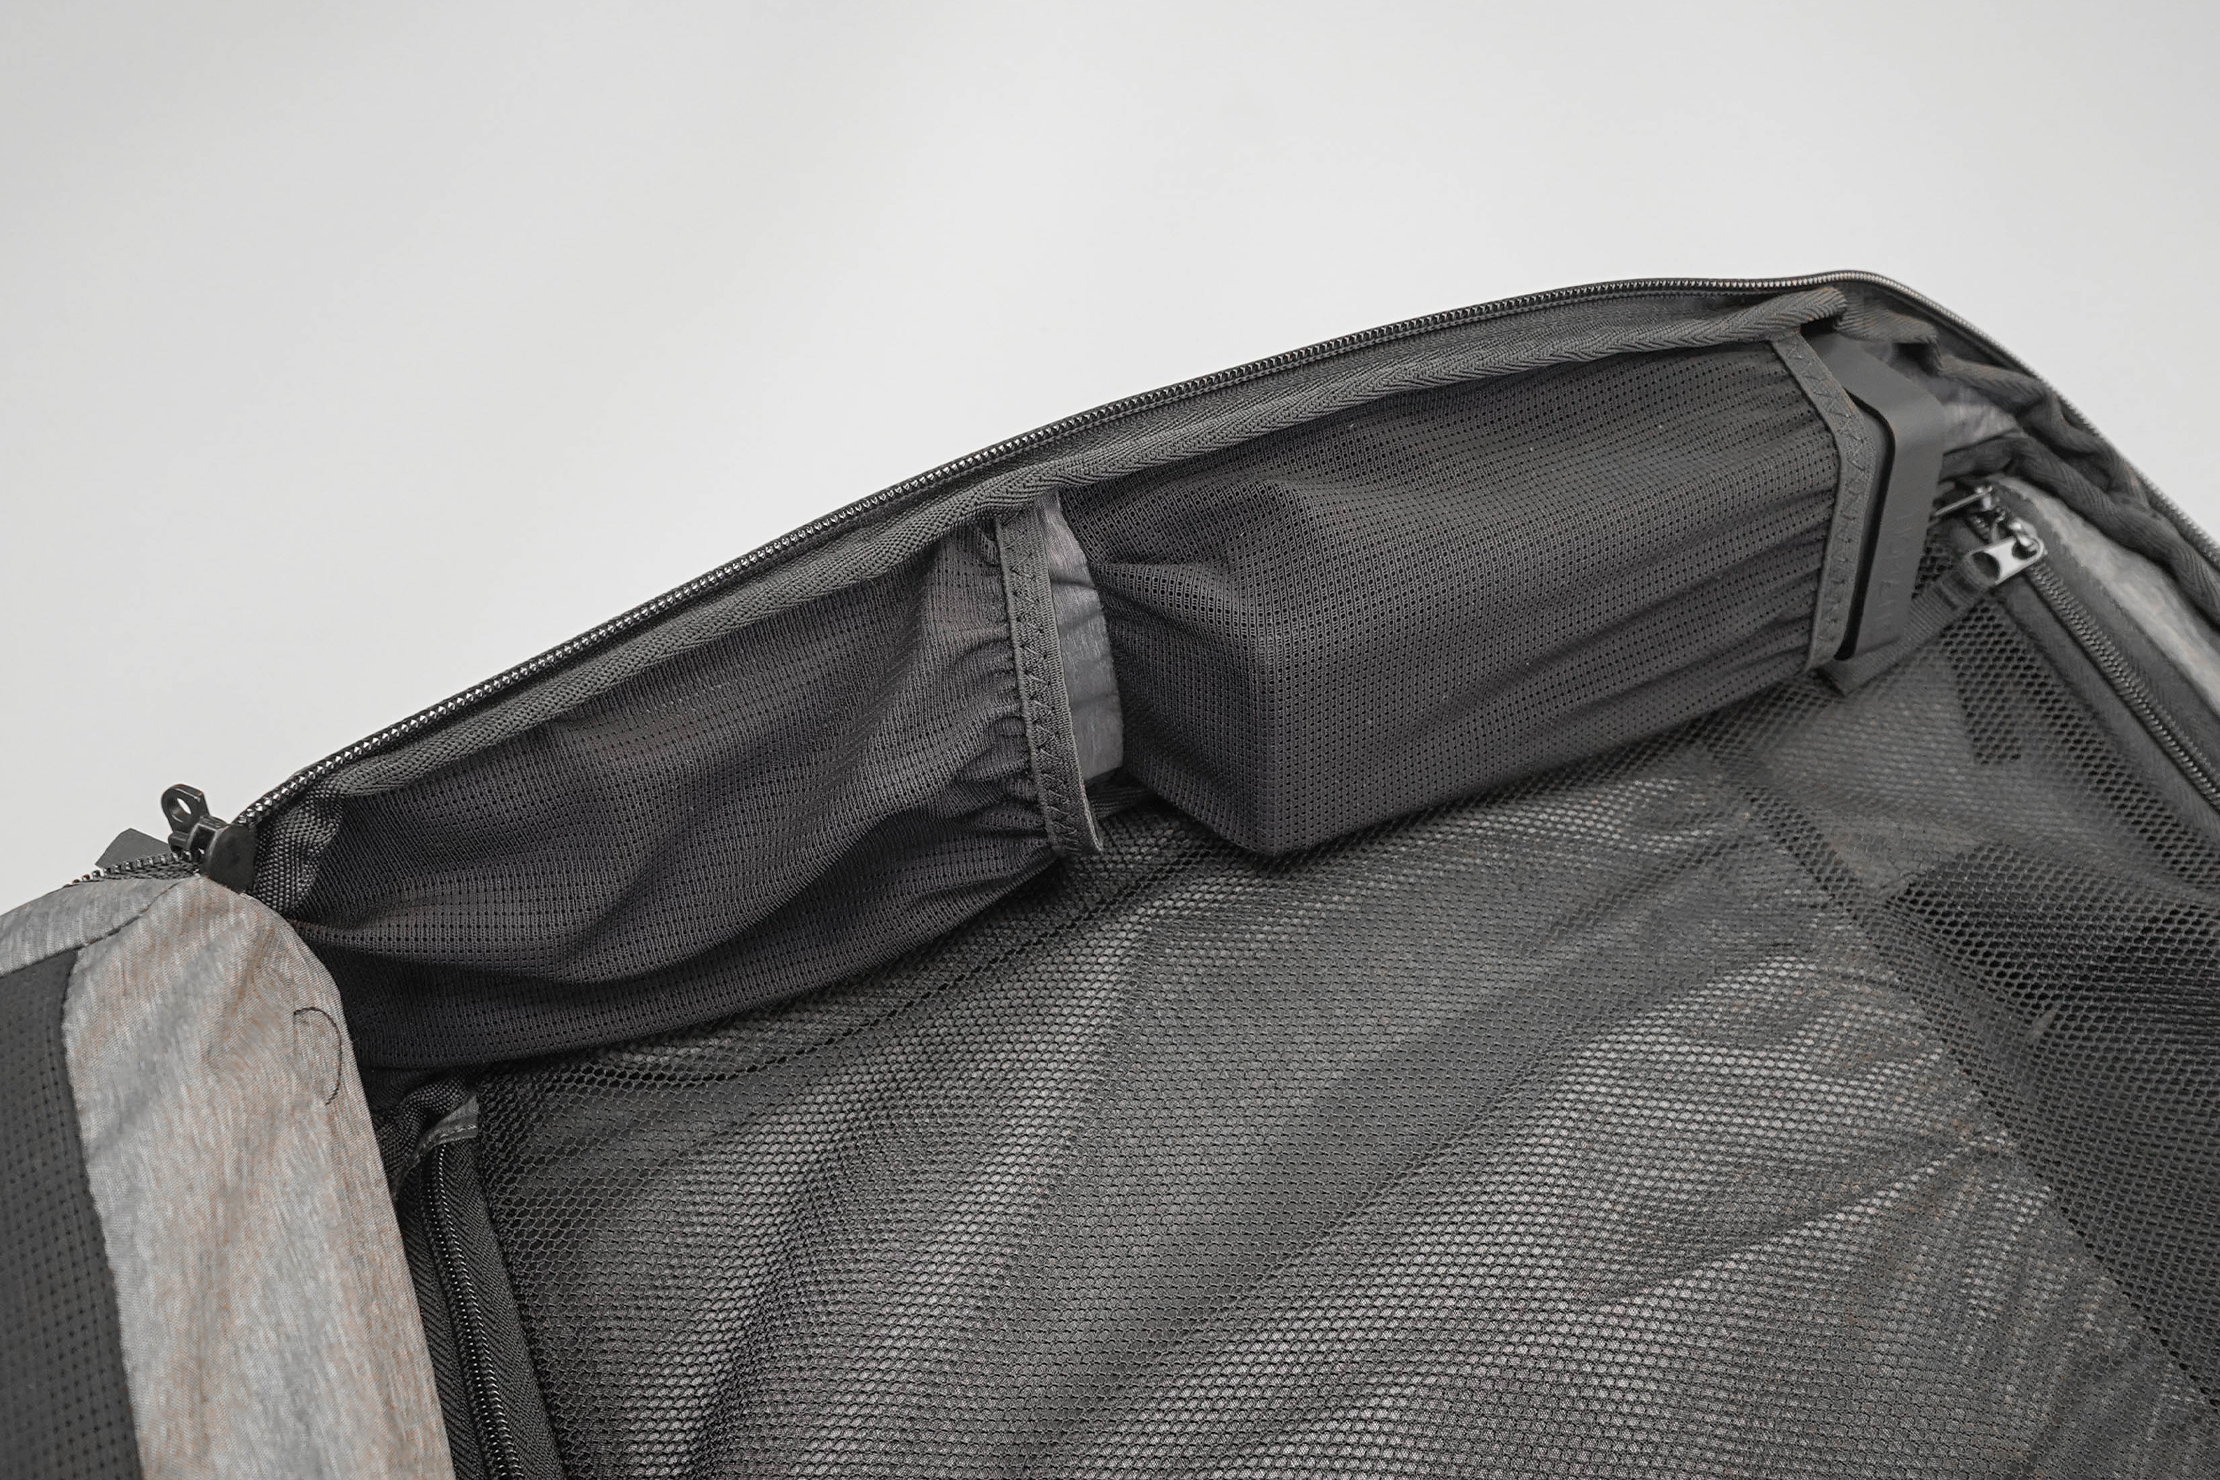 NOMATIC Travel Pack Mesh Pockets In The Main Compartment (Left Side)